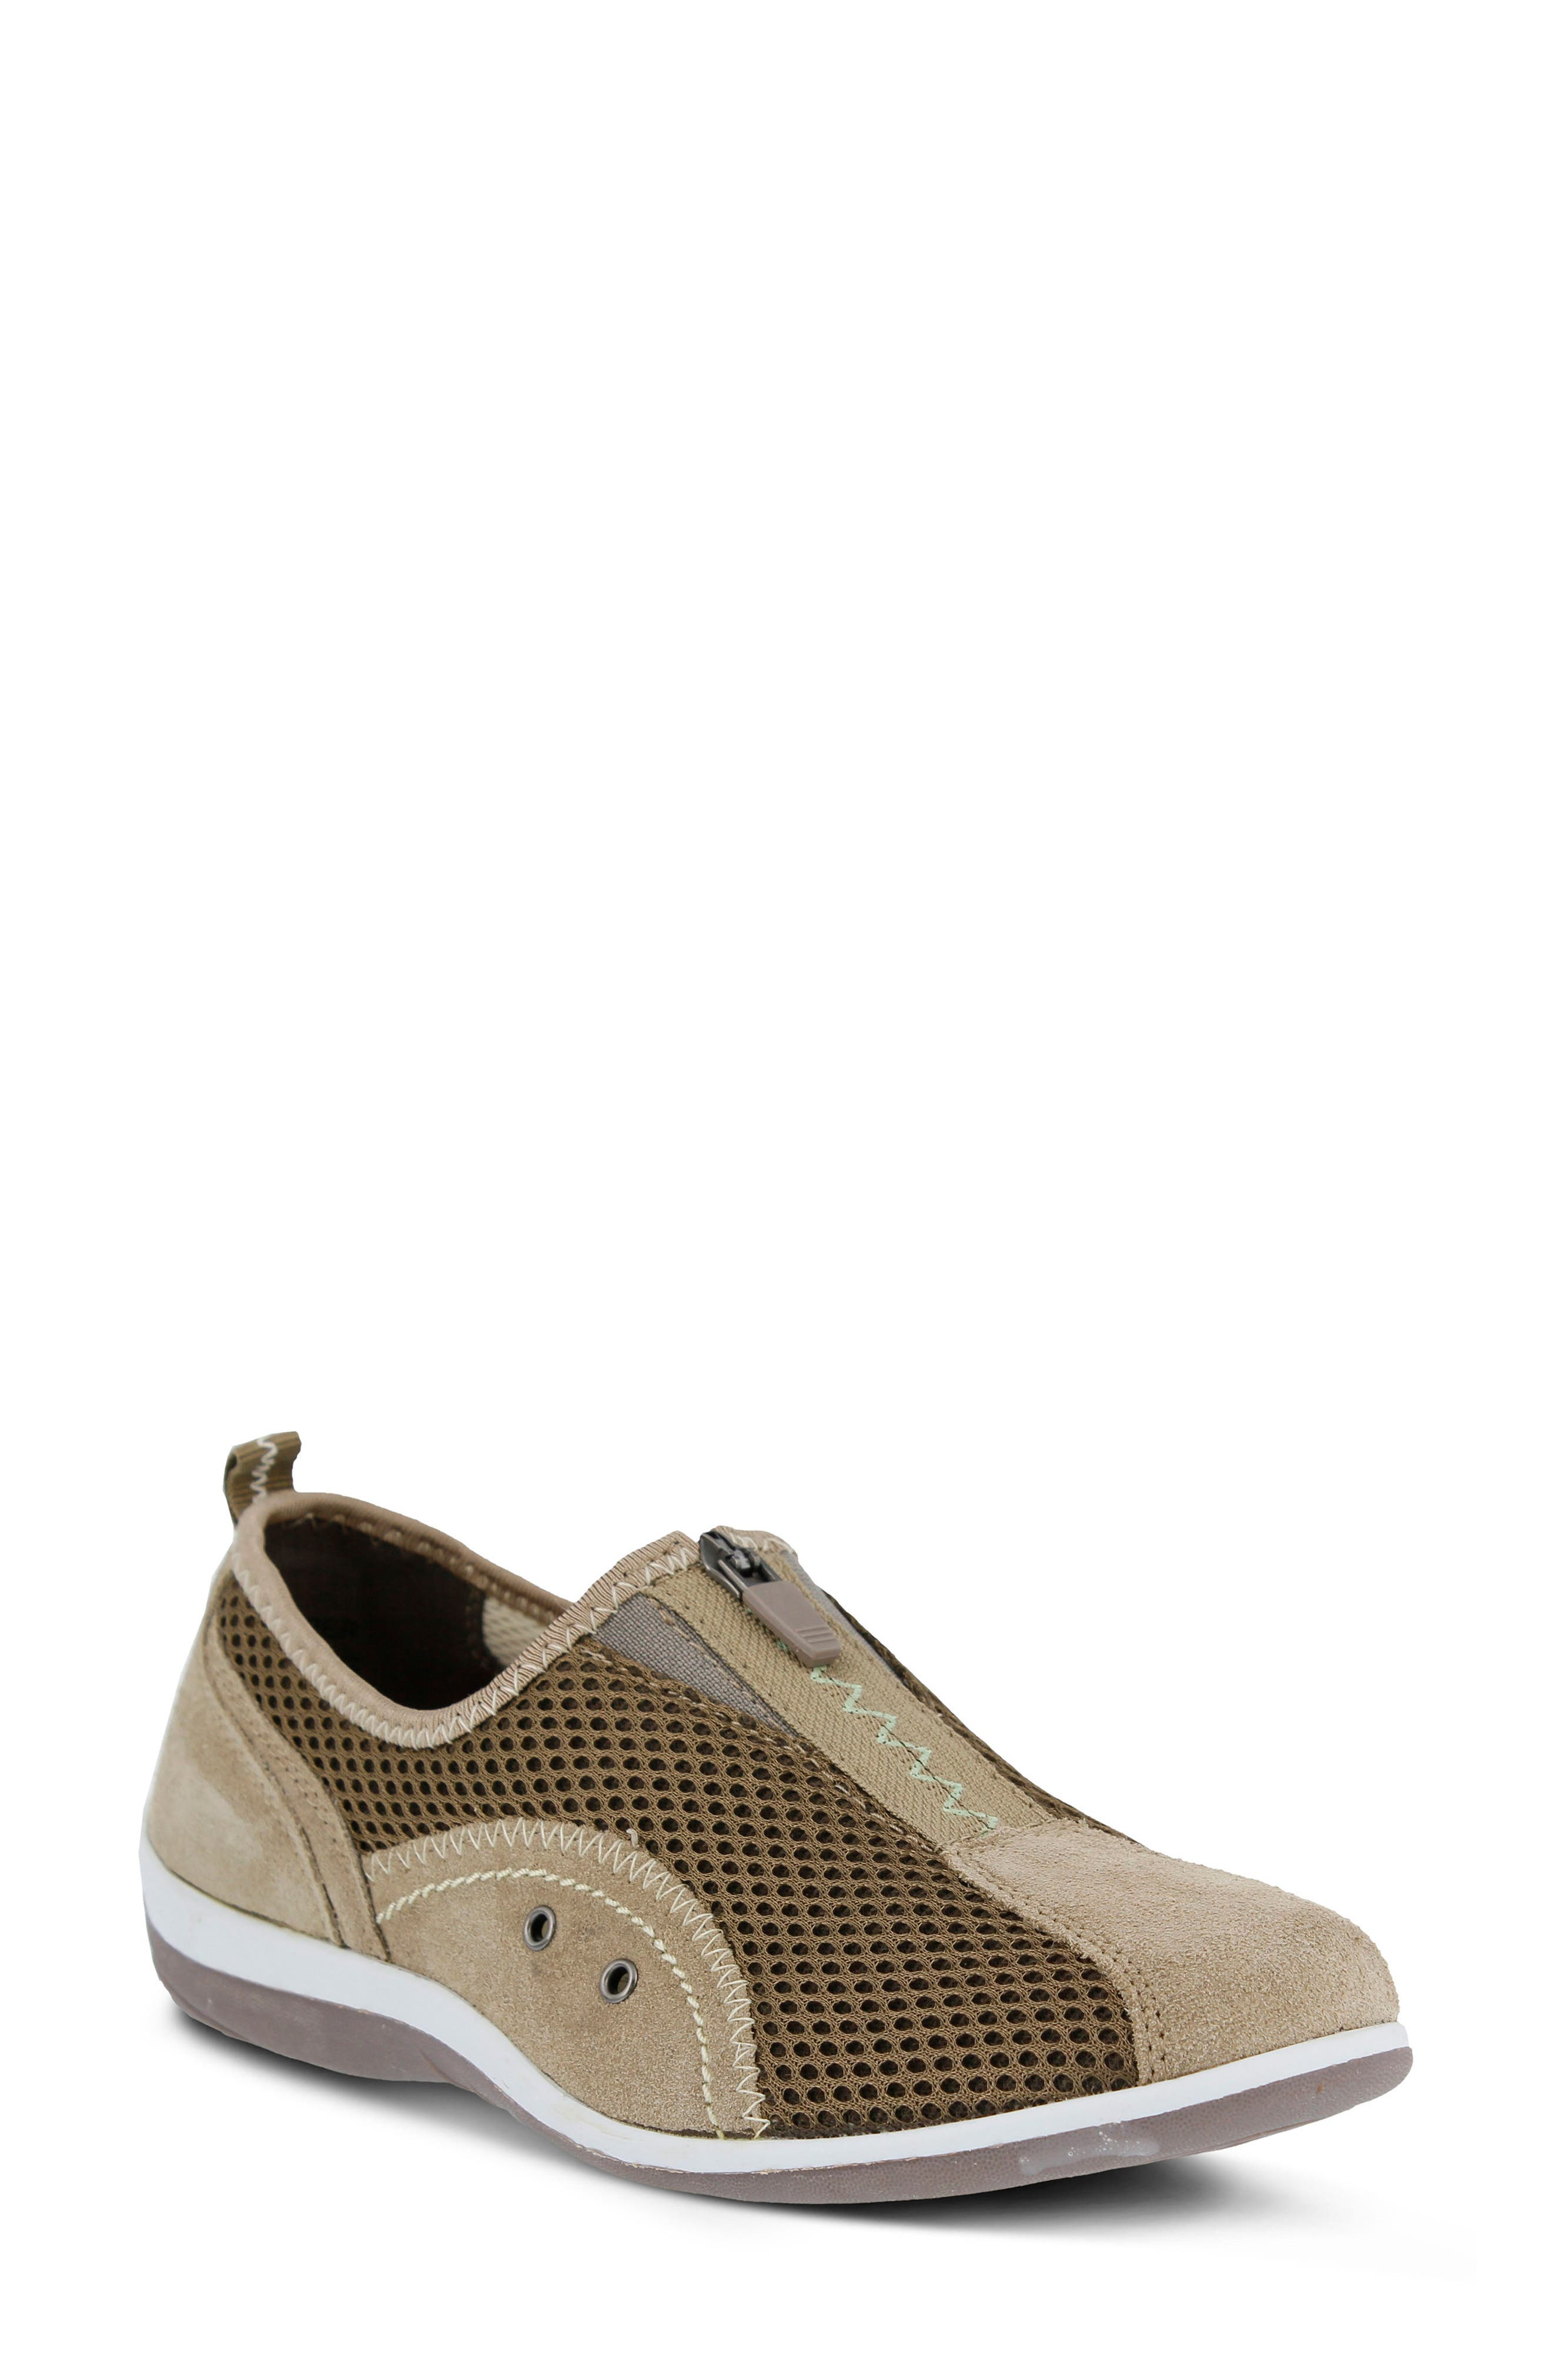 Racer Slip-On Sneaker,                             Main thumbnail 1, color,                             Taupe Suede